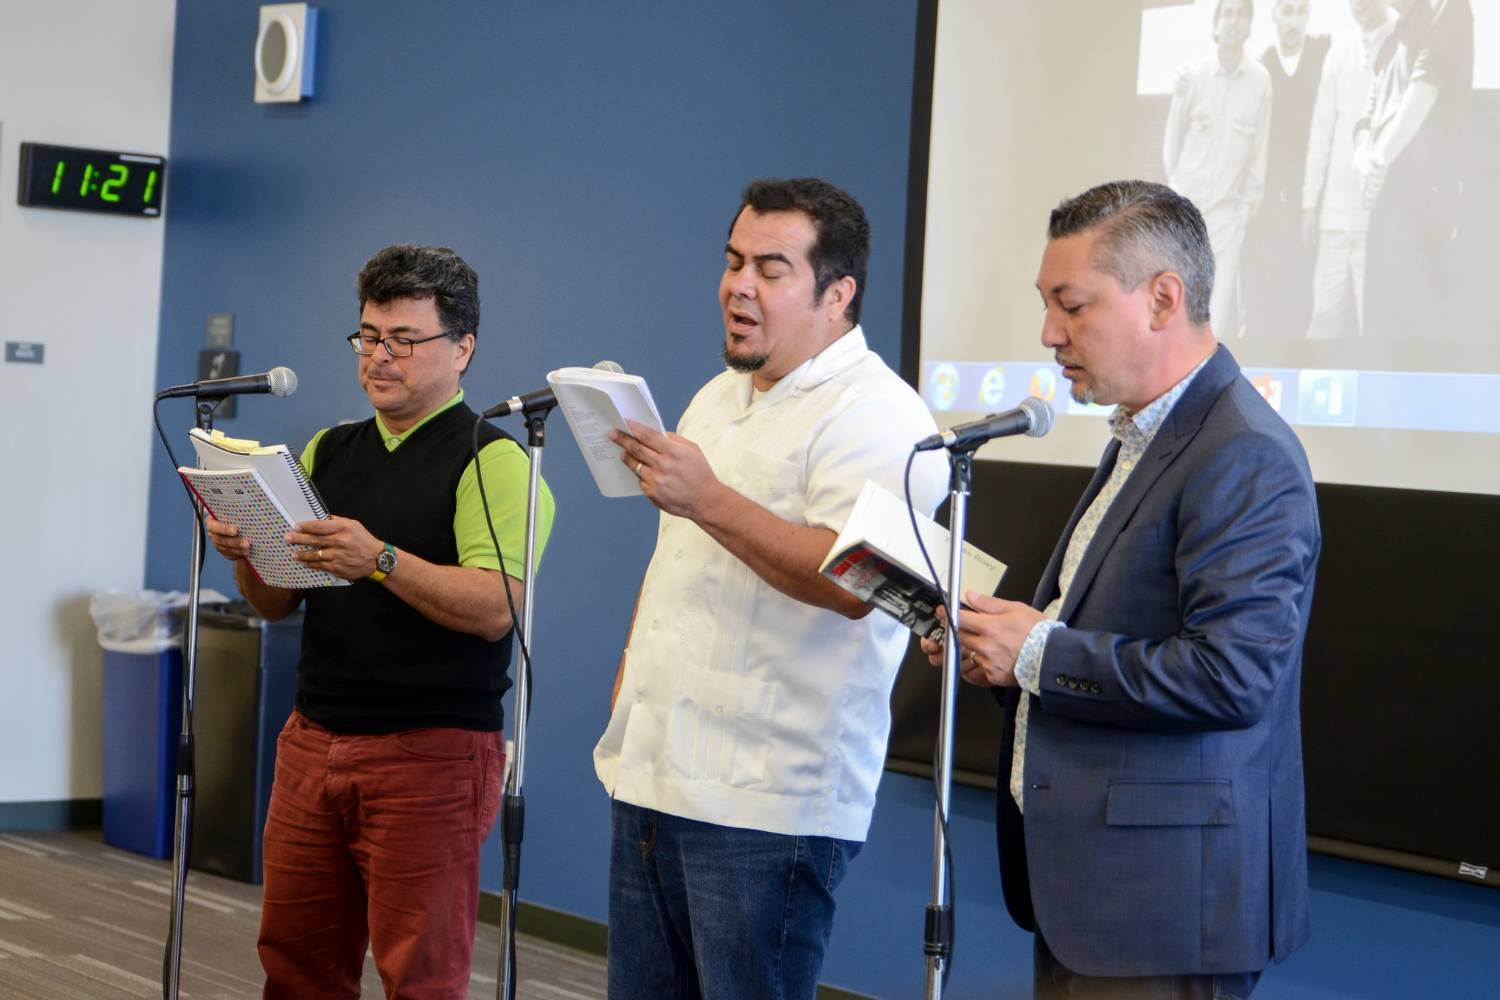 Tomás Riley, Adrian Arancibia and Adolfo Guzman-Lopez from the Latin spoken-word collective Taco Shop Poets performed and told the story of the formation of the group during a special reunion event at San Diego Mesa College on April 11.